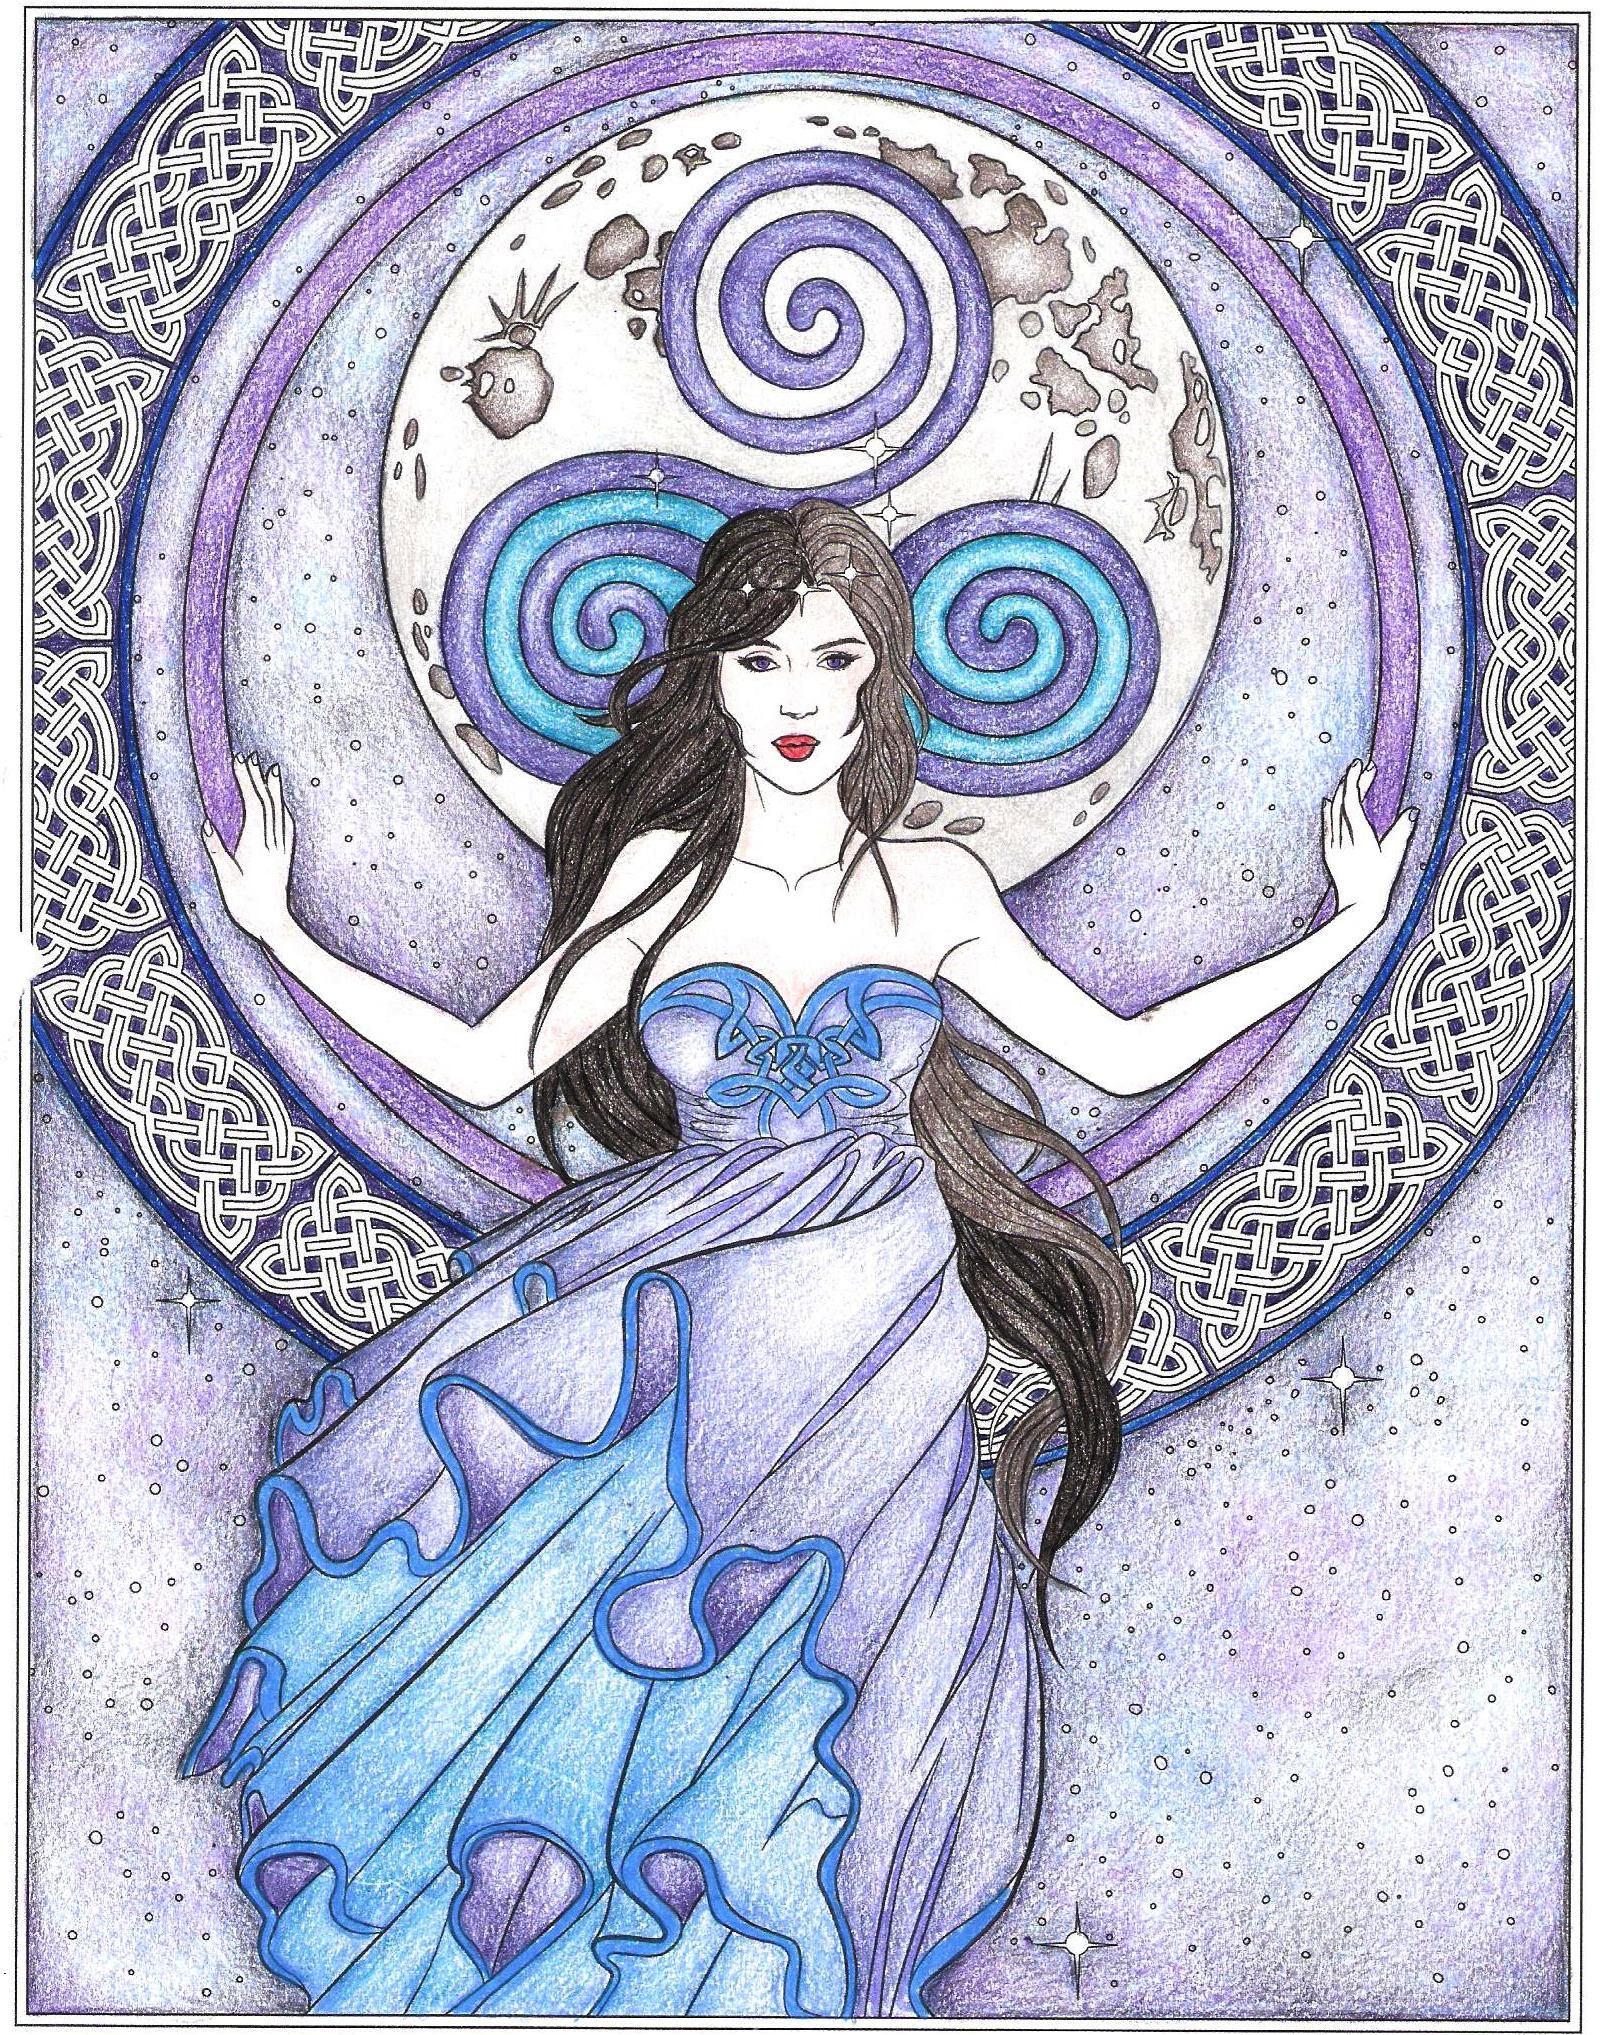 Arianrhod From Goddess And Mythology Coloring Book By Selina Fenech Fairies And Fantasy Enchanted Forest Coloring Book Coloring Books Pagan Art